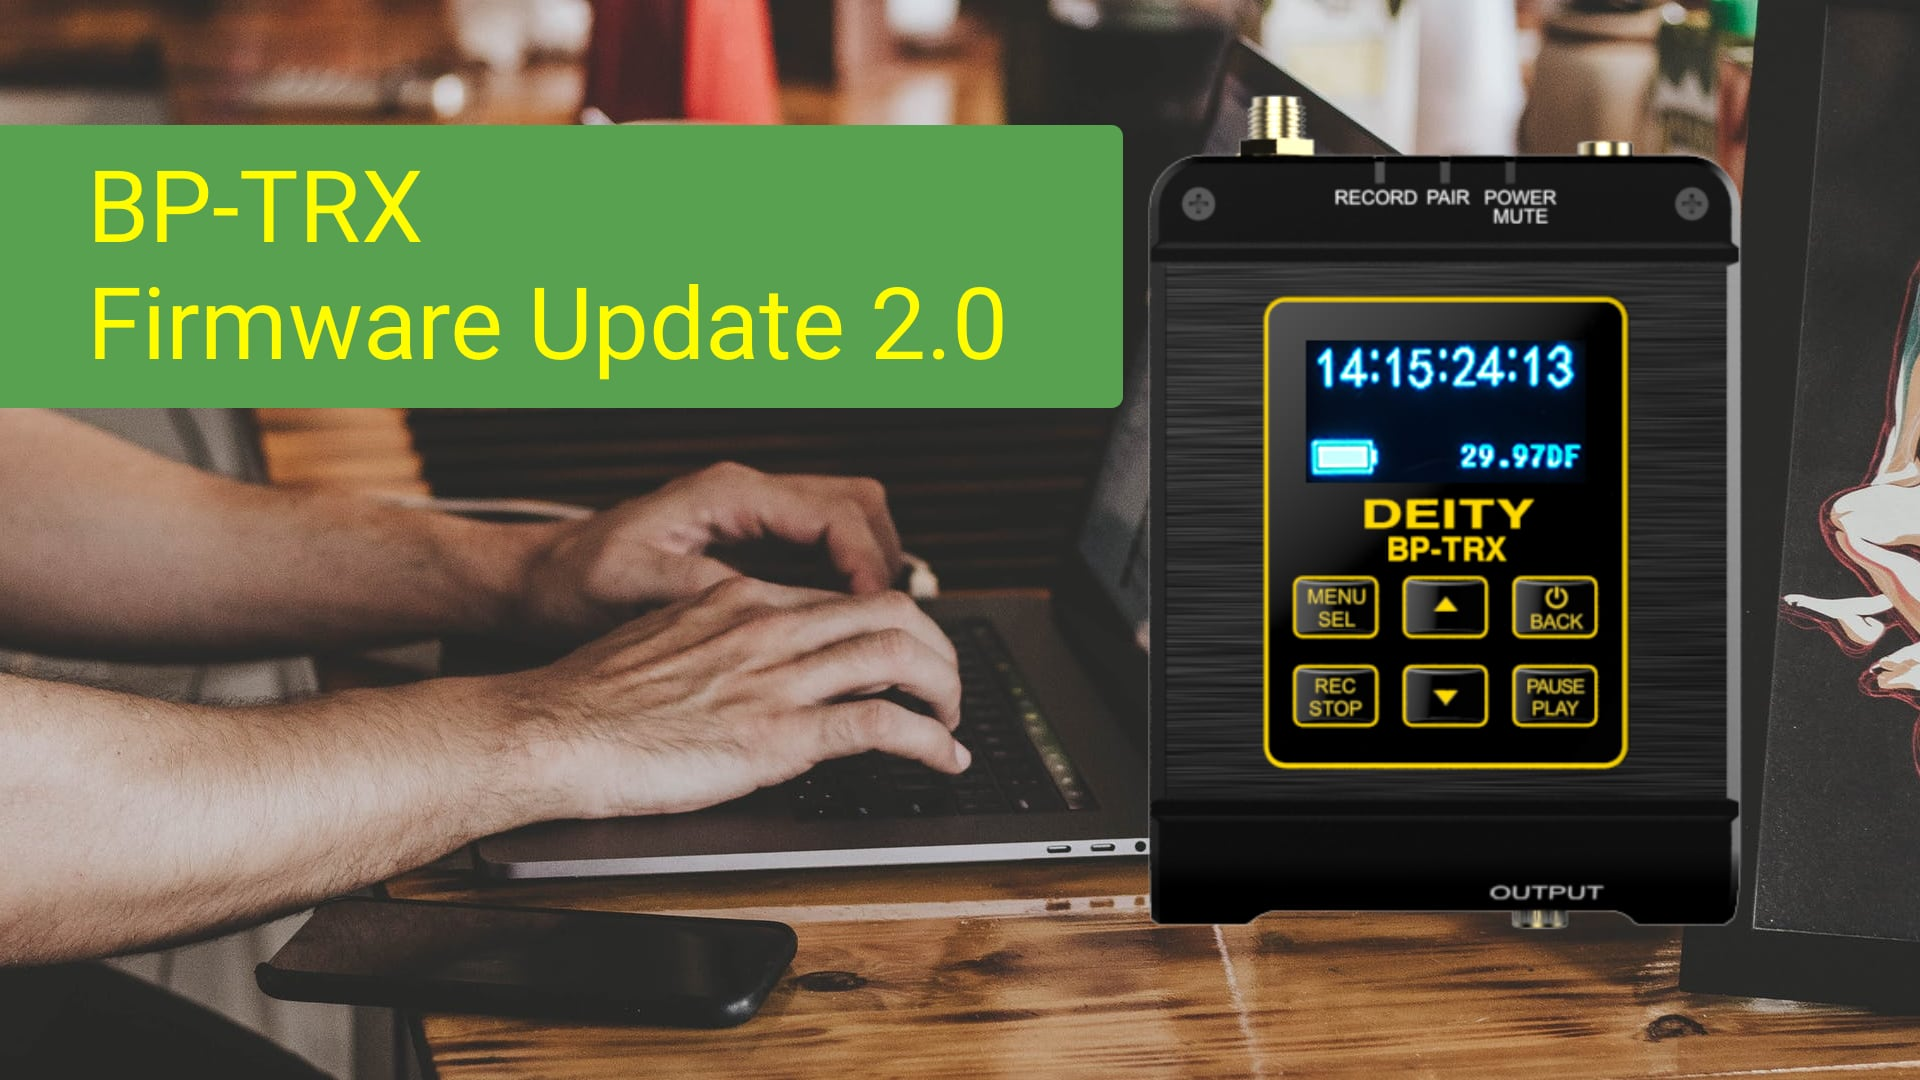 BP-TRX Firmware Update 2.0